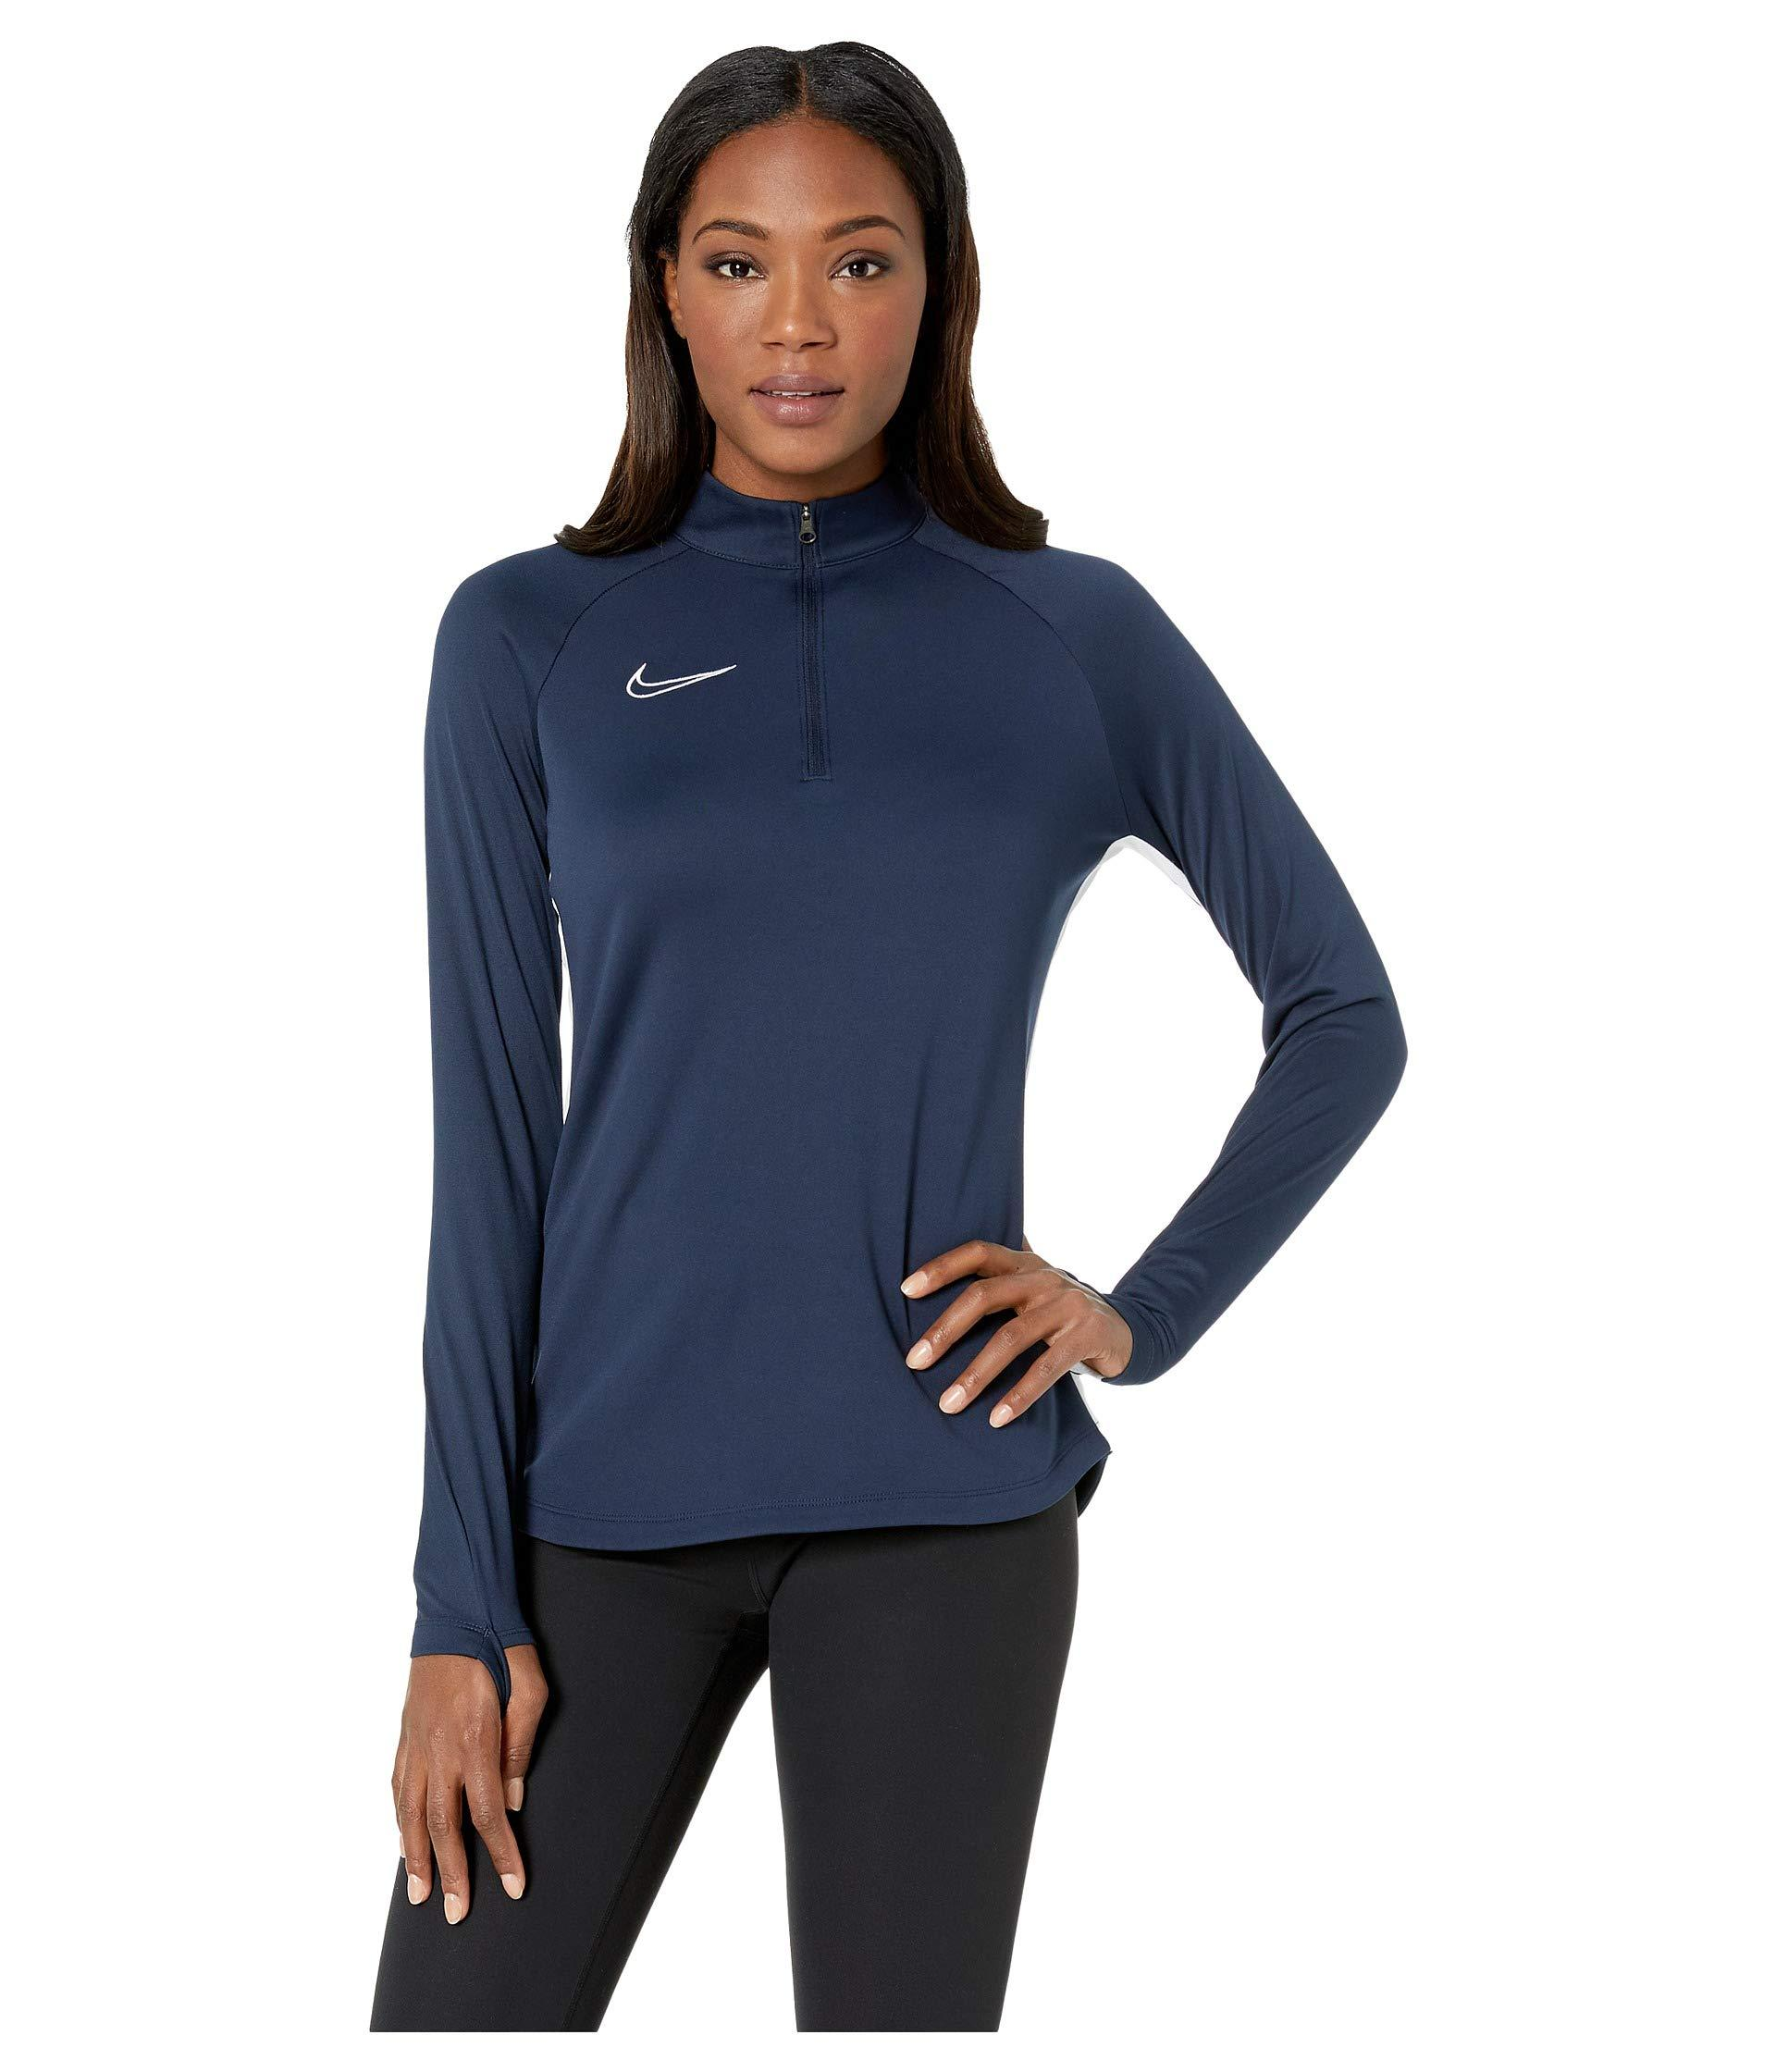 Lyst - Nike Dry Academy Drill Top (black white white) Women s ... e9a08856a